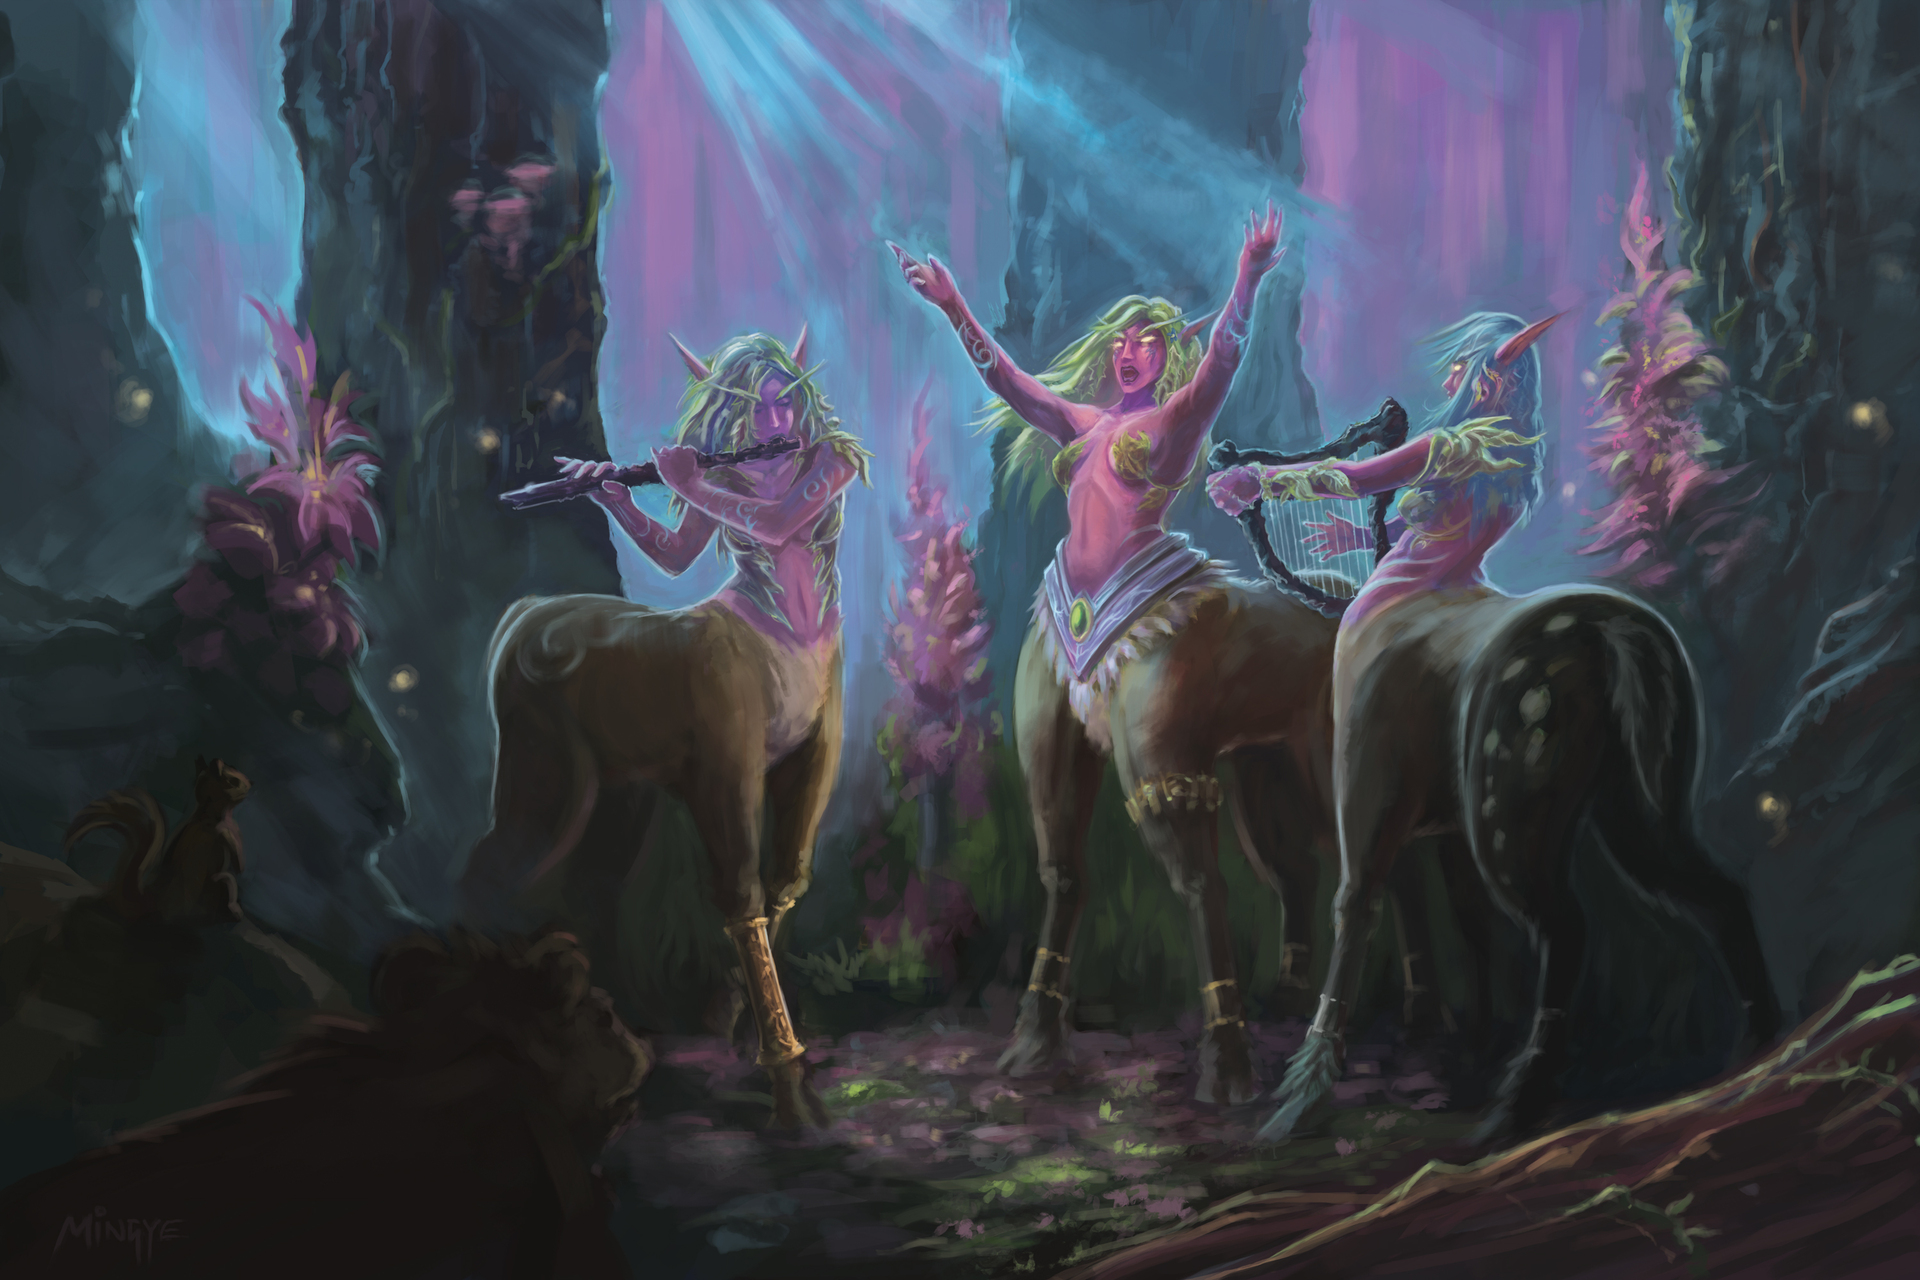 World of warcraft centaur porn erotic video